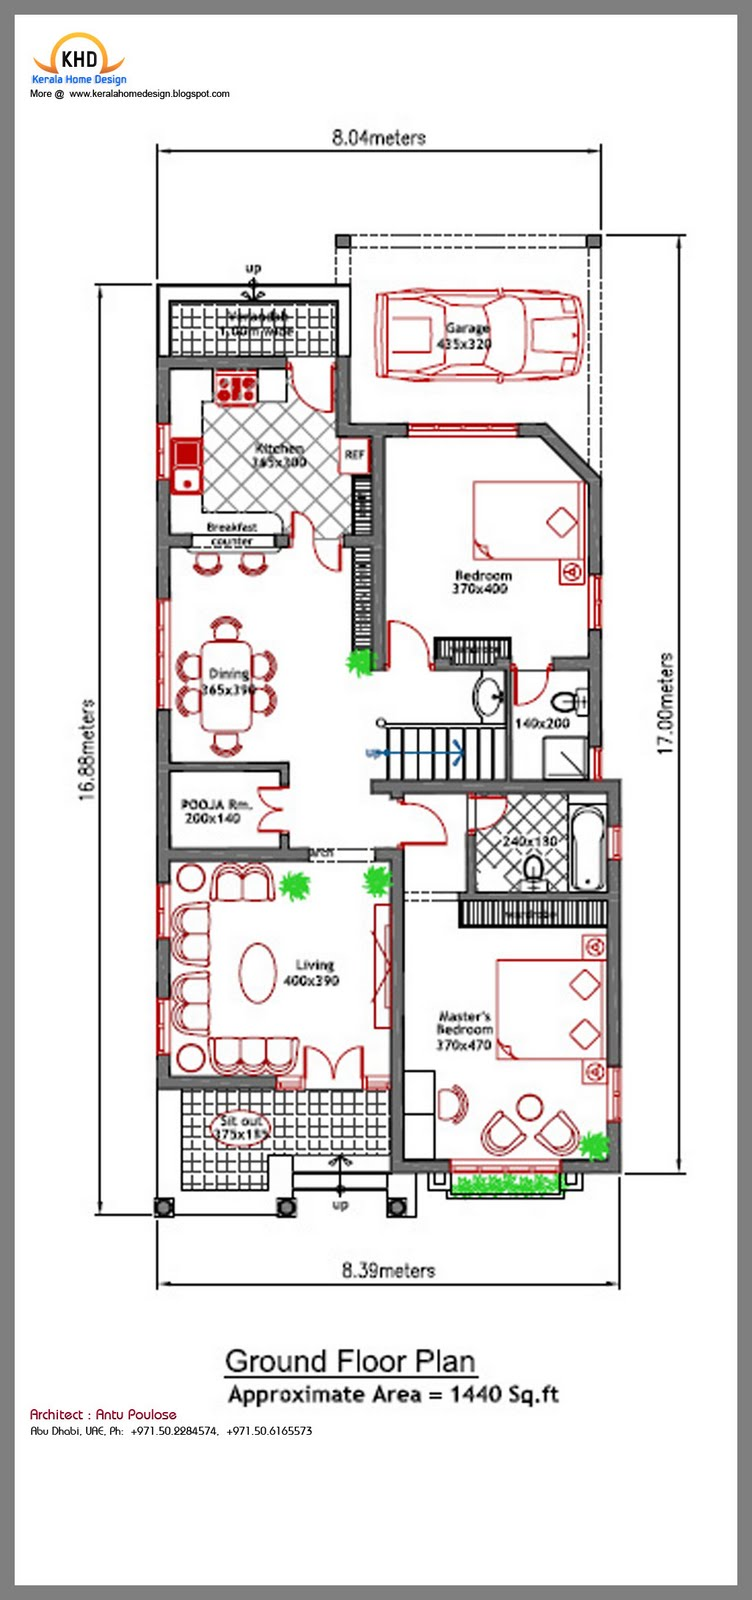 House plan and elevation 2020 sq ft kerala home for 8 sqm room design